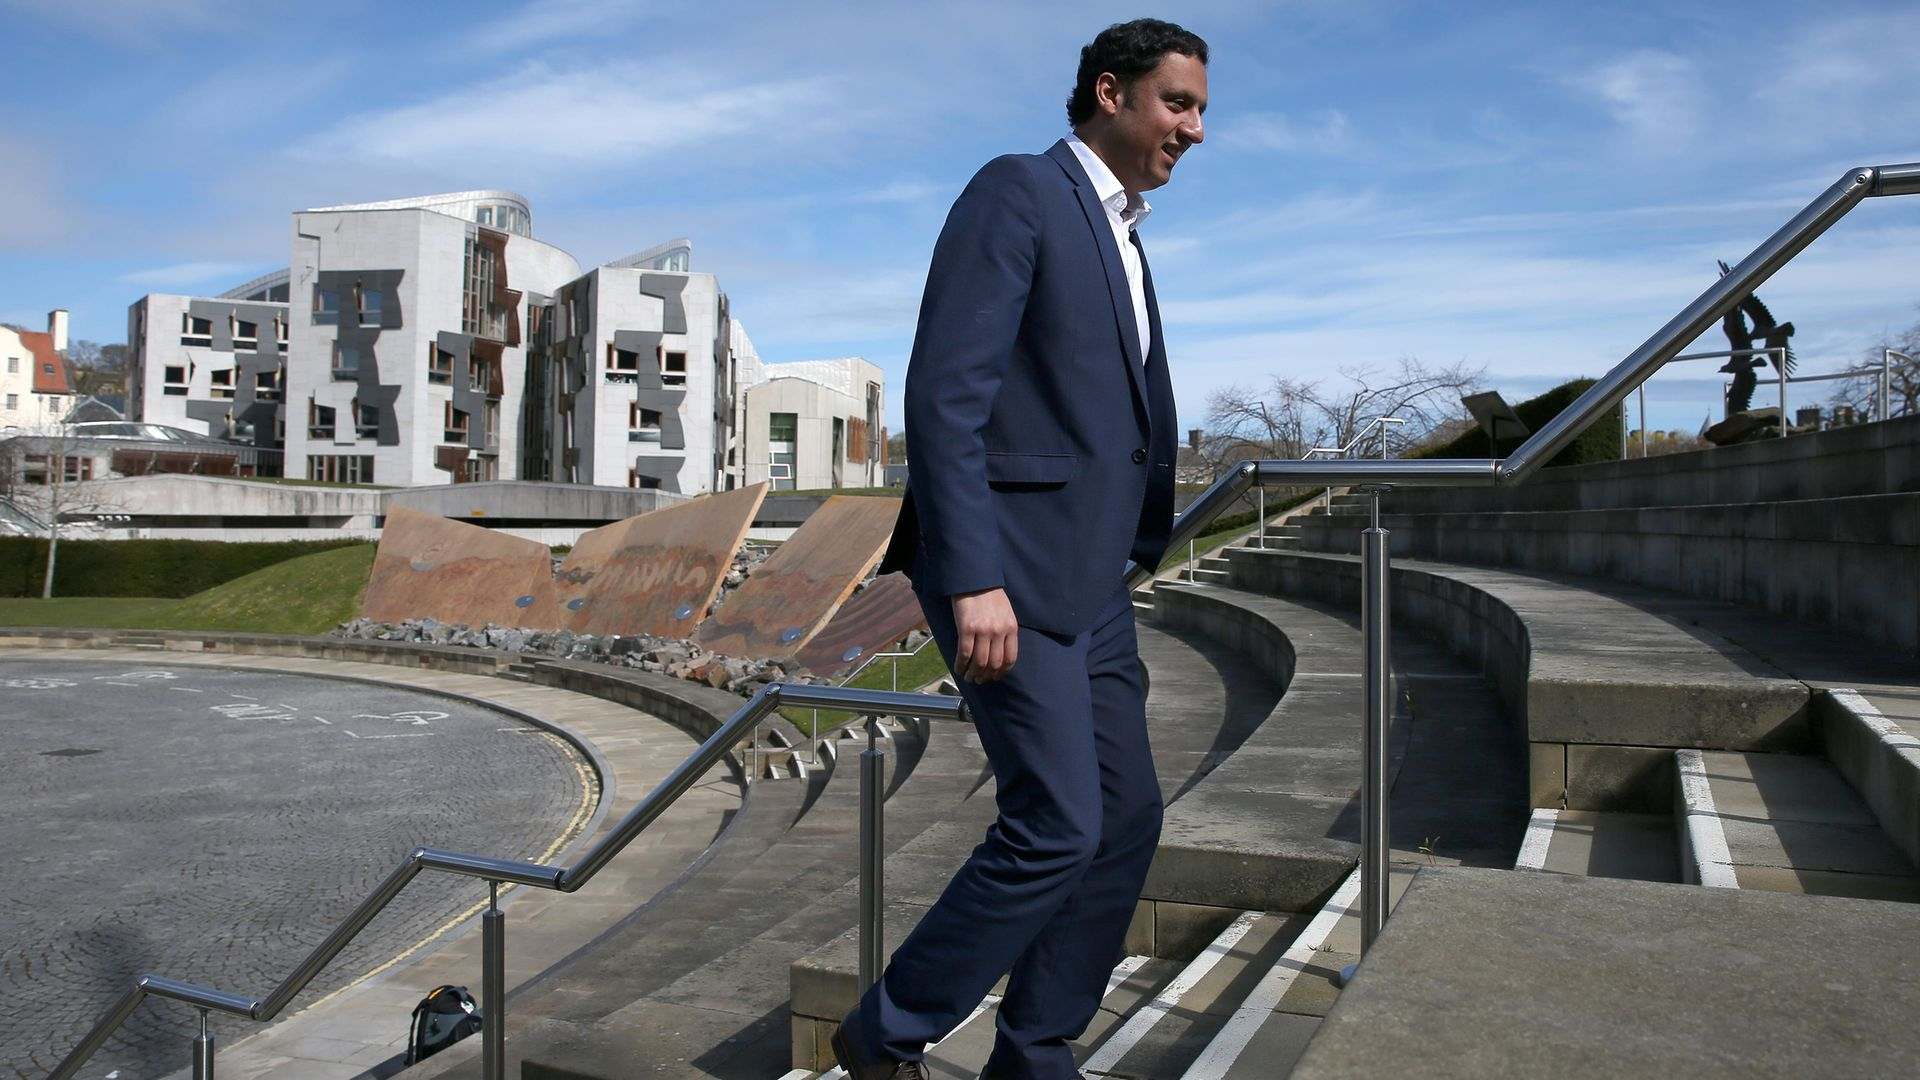 Scottish Labour leader Anas Sarwar has promised to scrap the TV licence fee for over-75s - Credit: PA